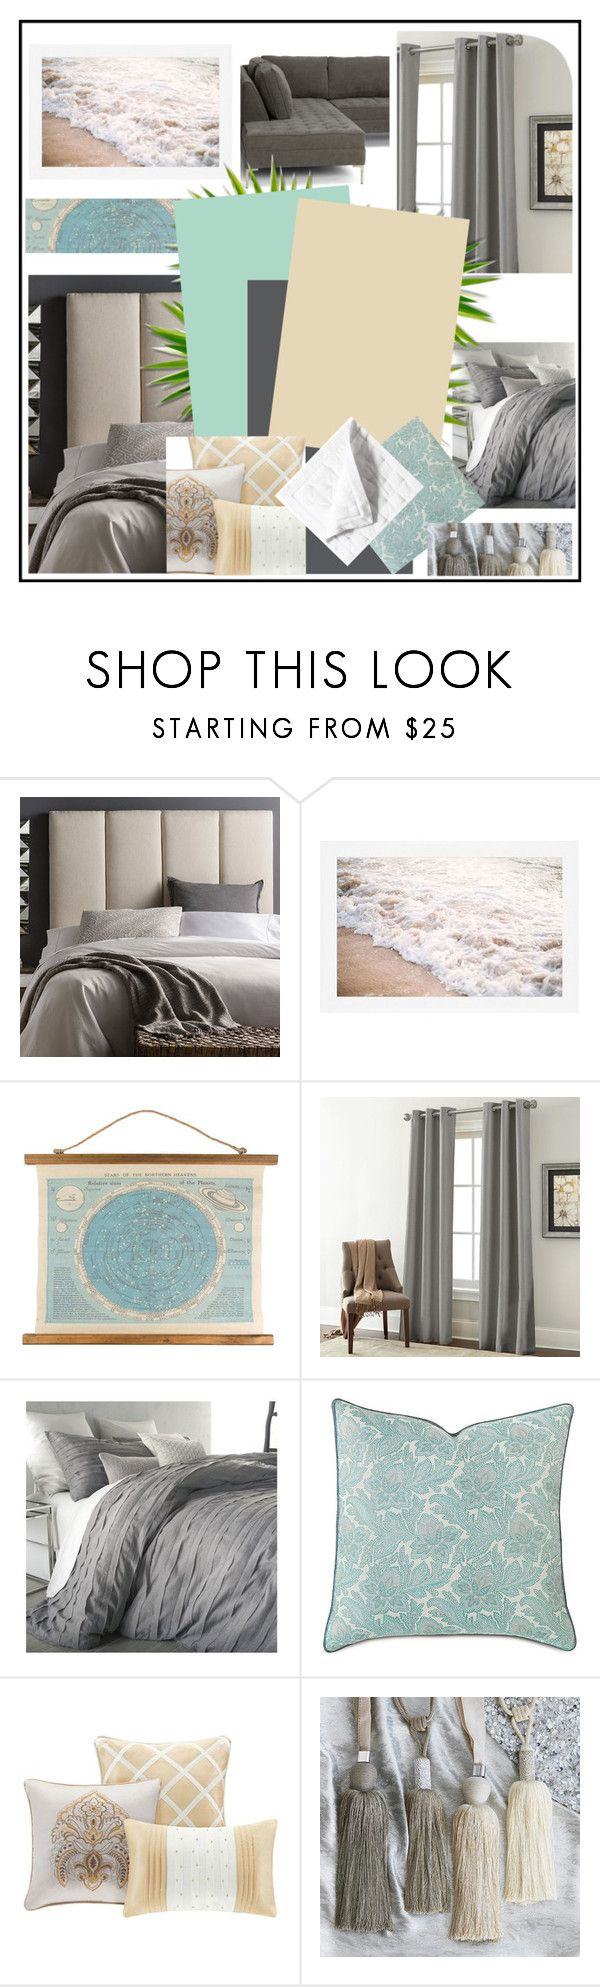 """""""beach apartament"""" by kata-koppany on Polyvore featuring interior, interiors, interior design, home, home decor, interior decorating, Pottery Barn, DKNY, Frontgate and modern"""